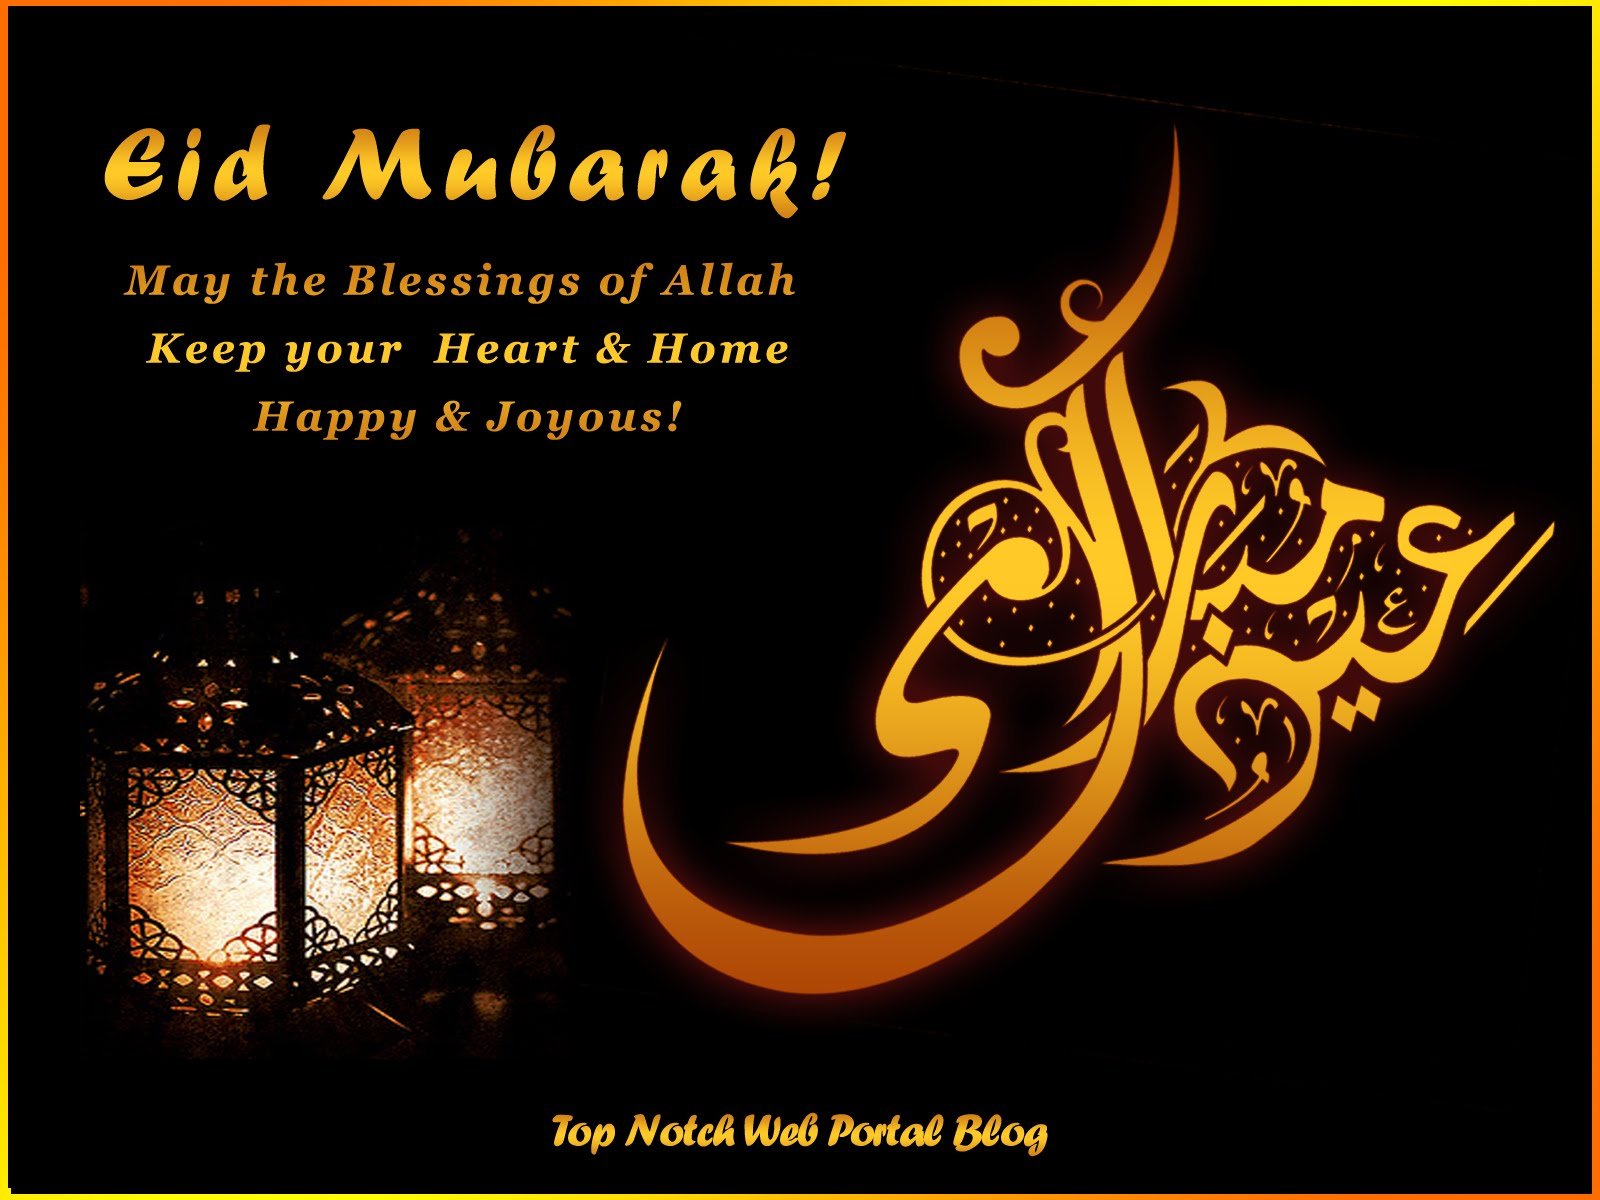 Eid Mubarak 2013 HD wallpaper